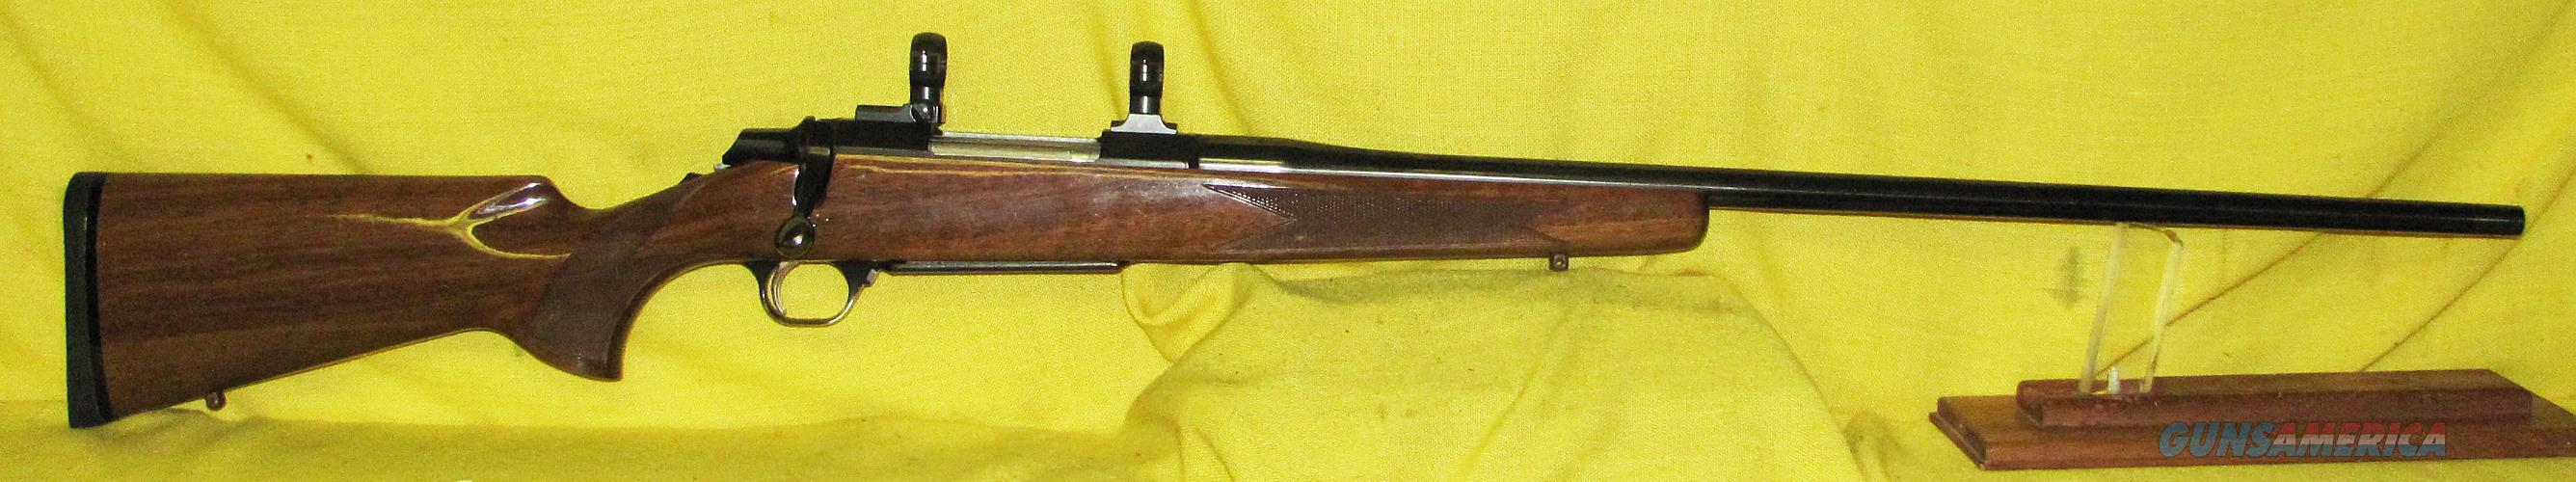 BROWNING A-BOLT (MEDALIST)  Guns > Rifles > Browning Rifles > Bolt Action > Hunting > Blue